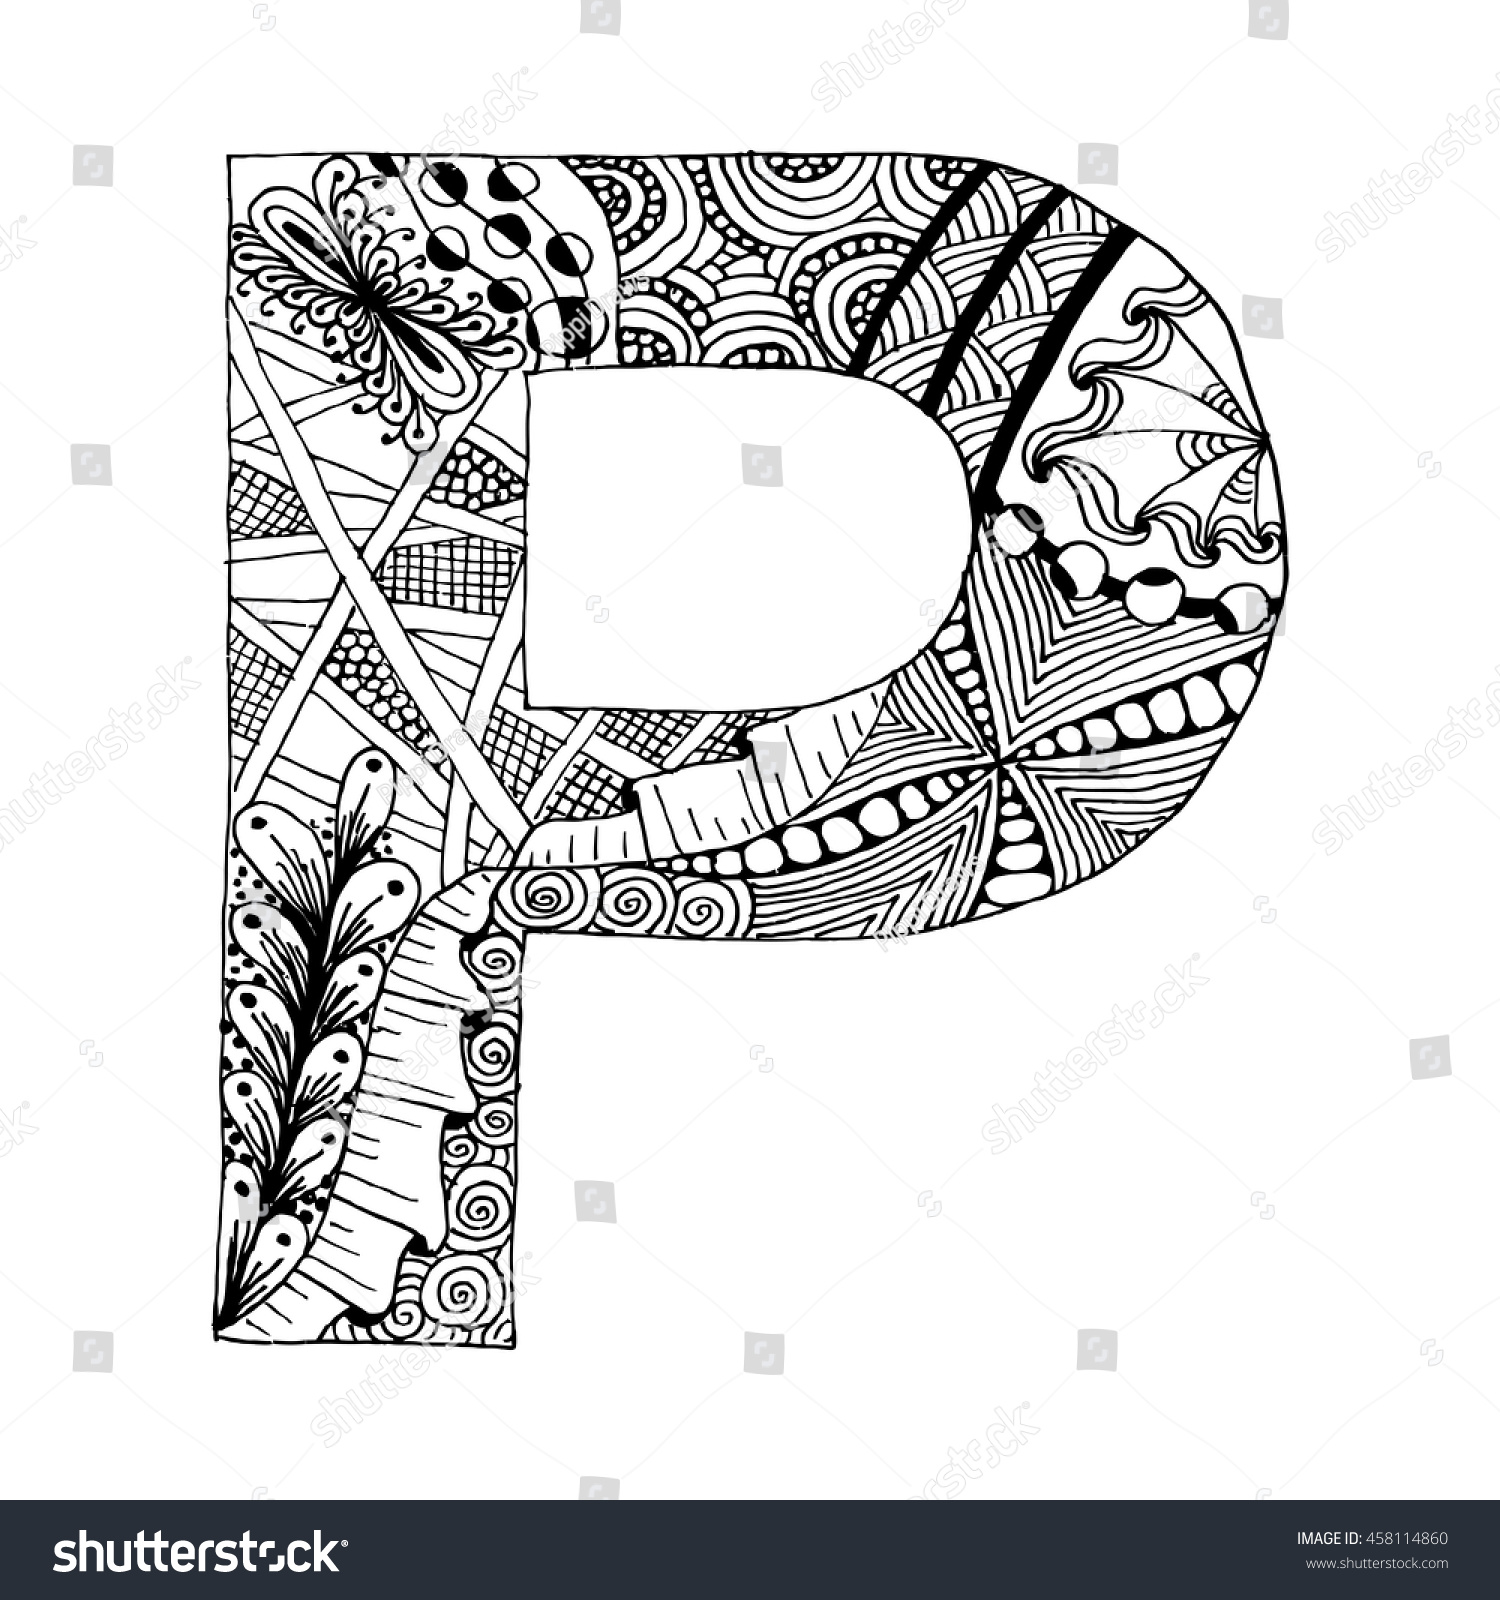 zentangle stylized alphabet letter p doodle stock vector 458114860